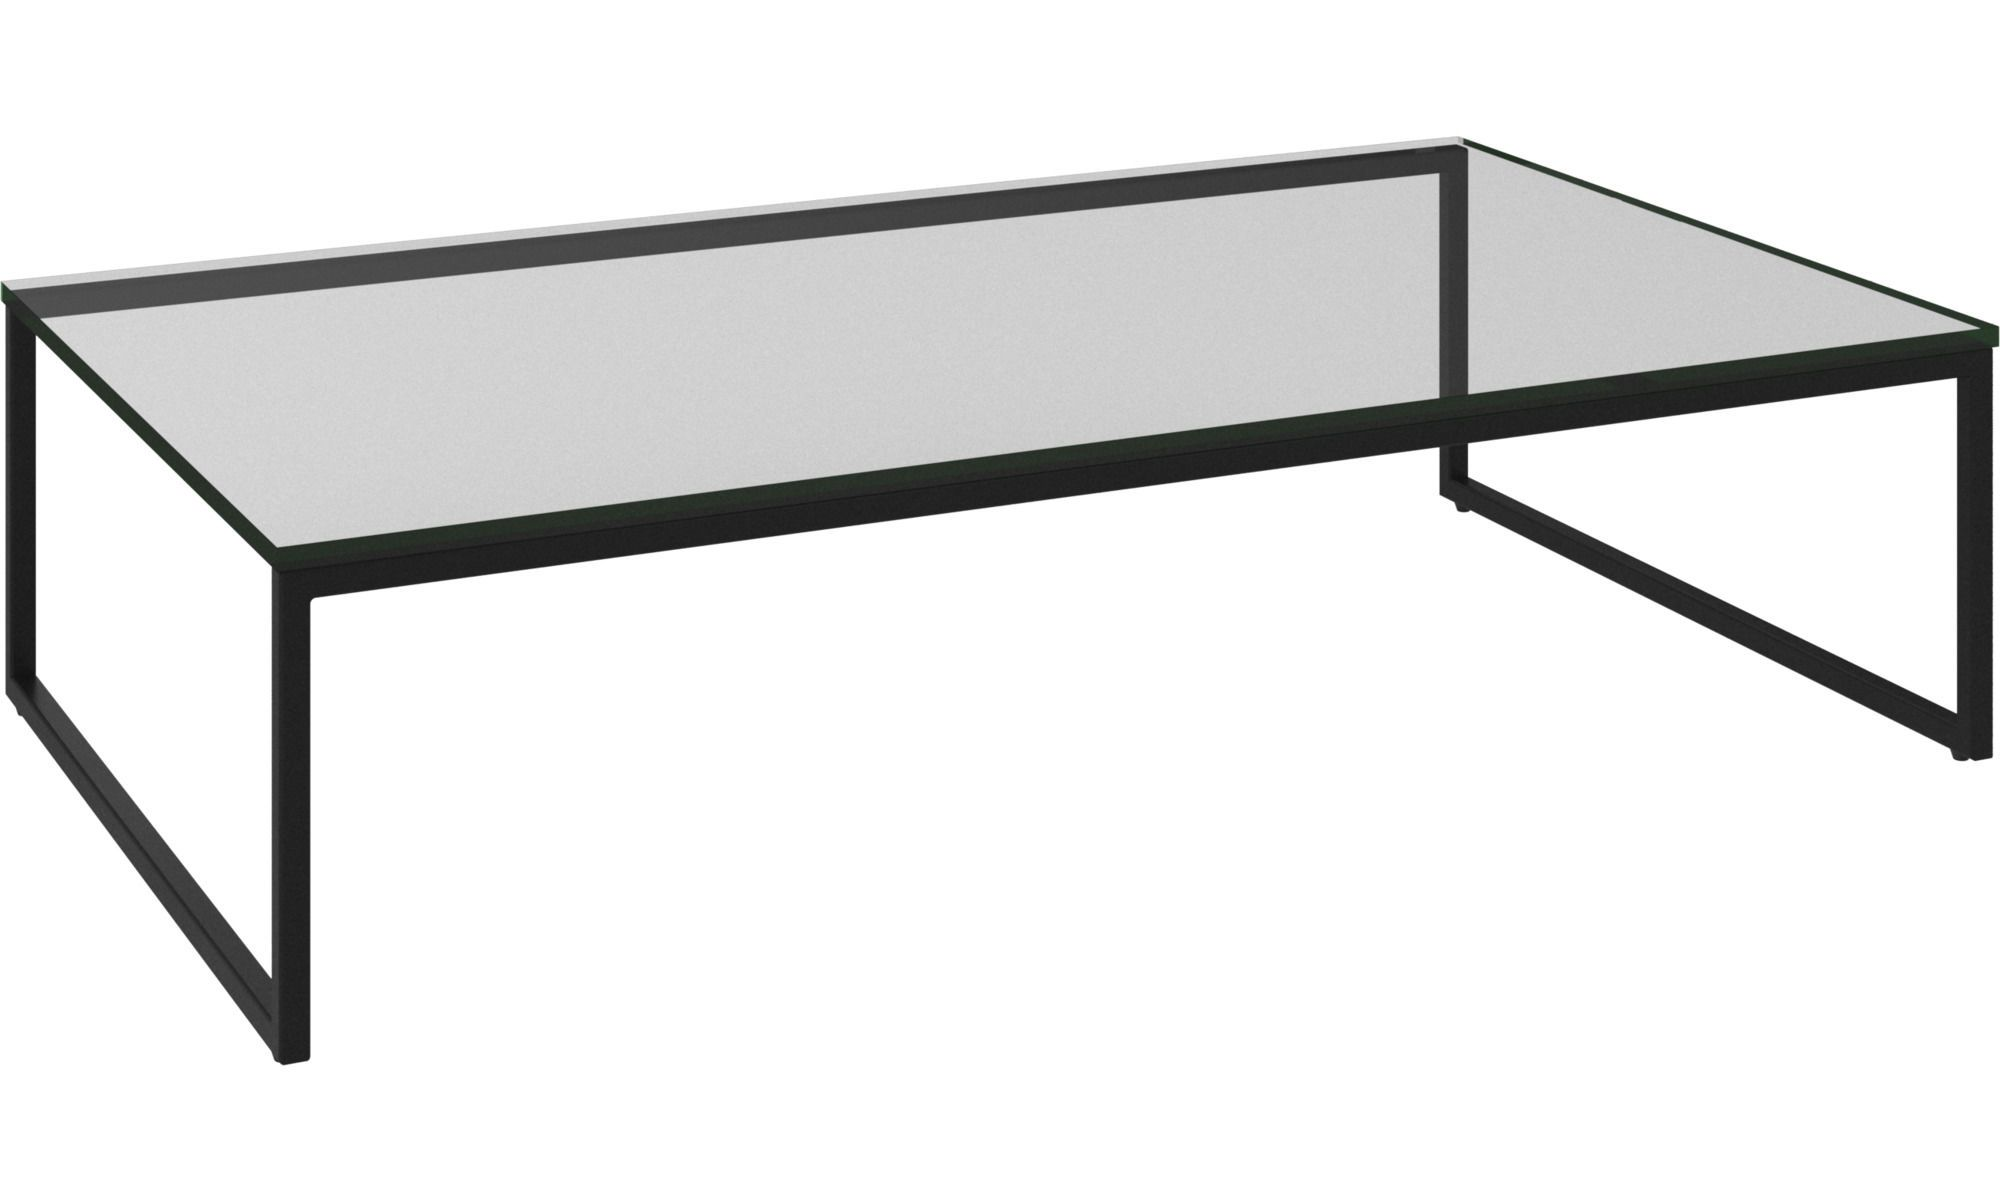 Boconcept Lugo Rectangular Coffee Table With Clear Glass Top